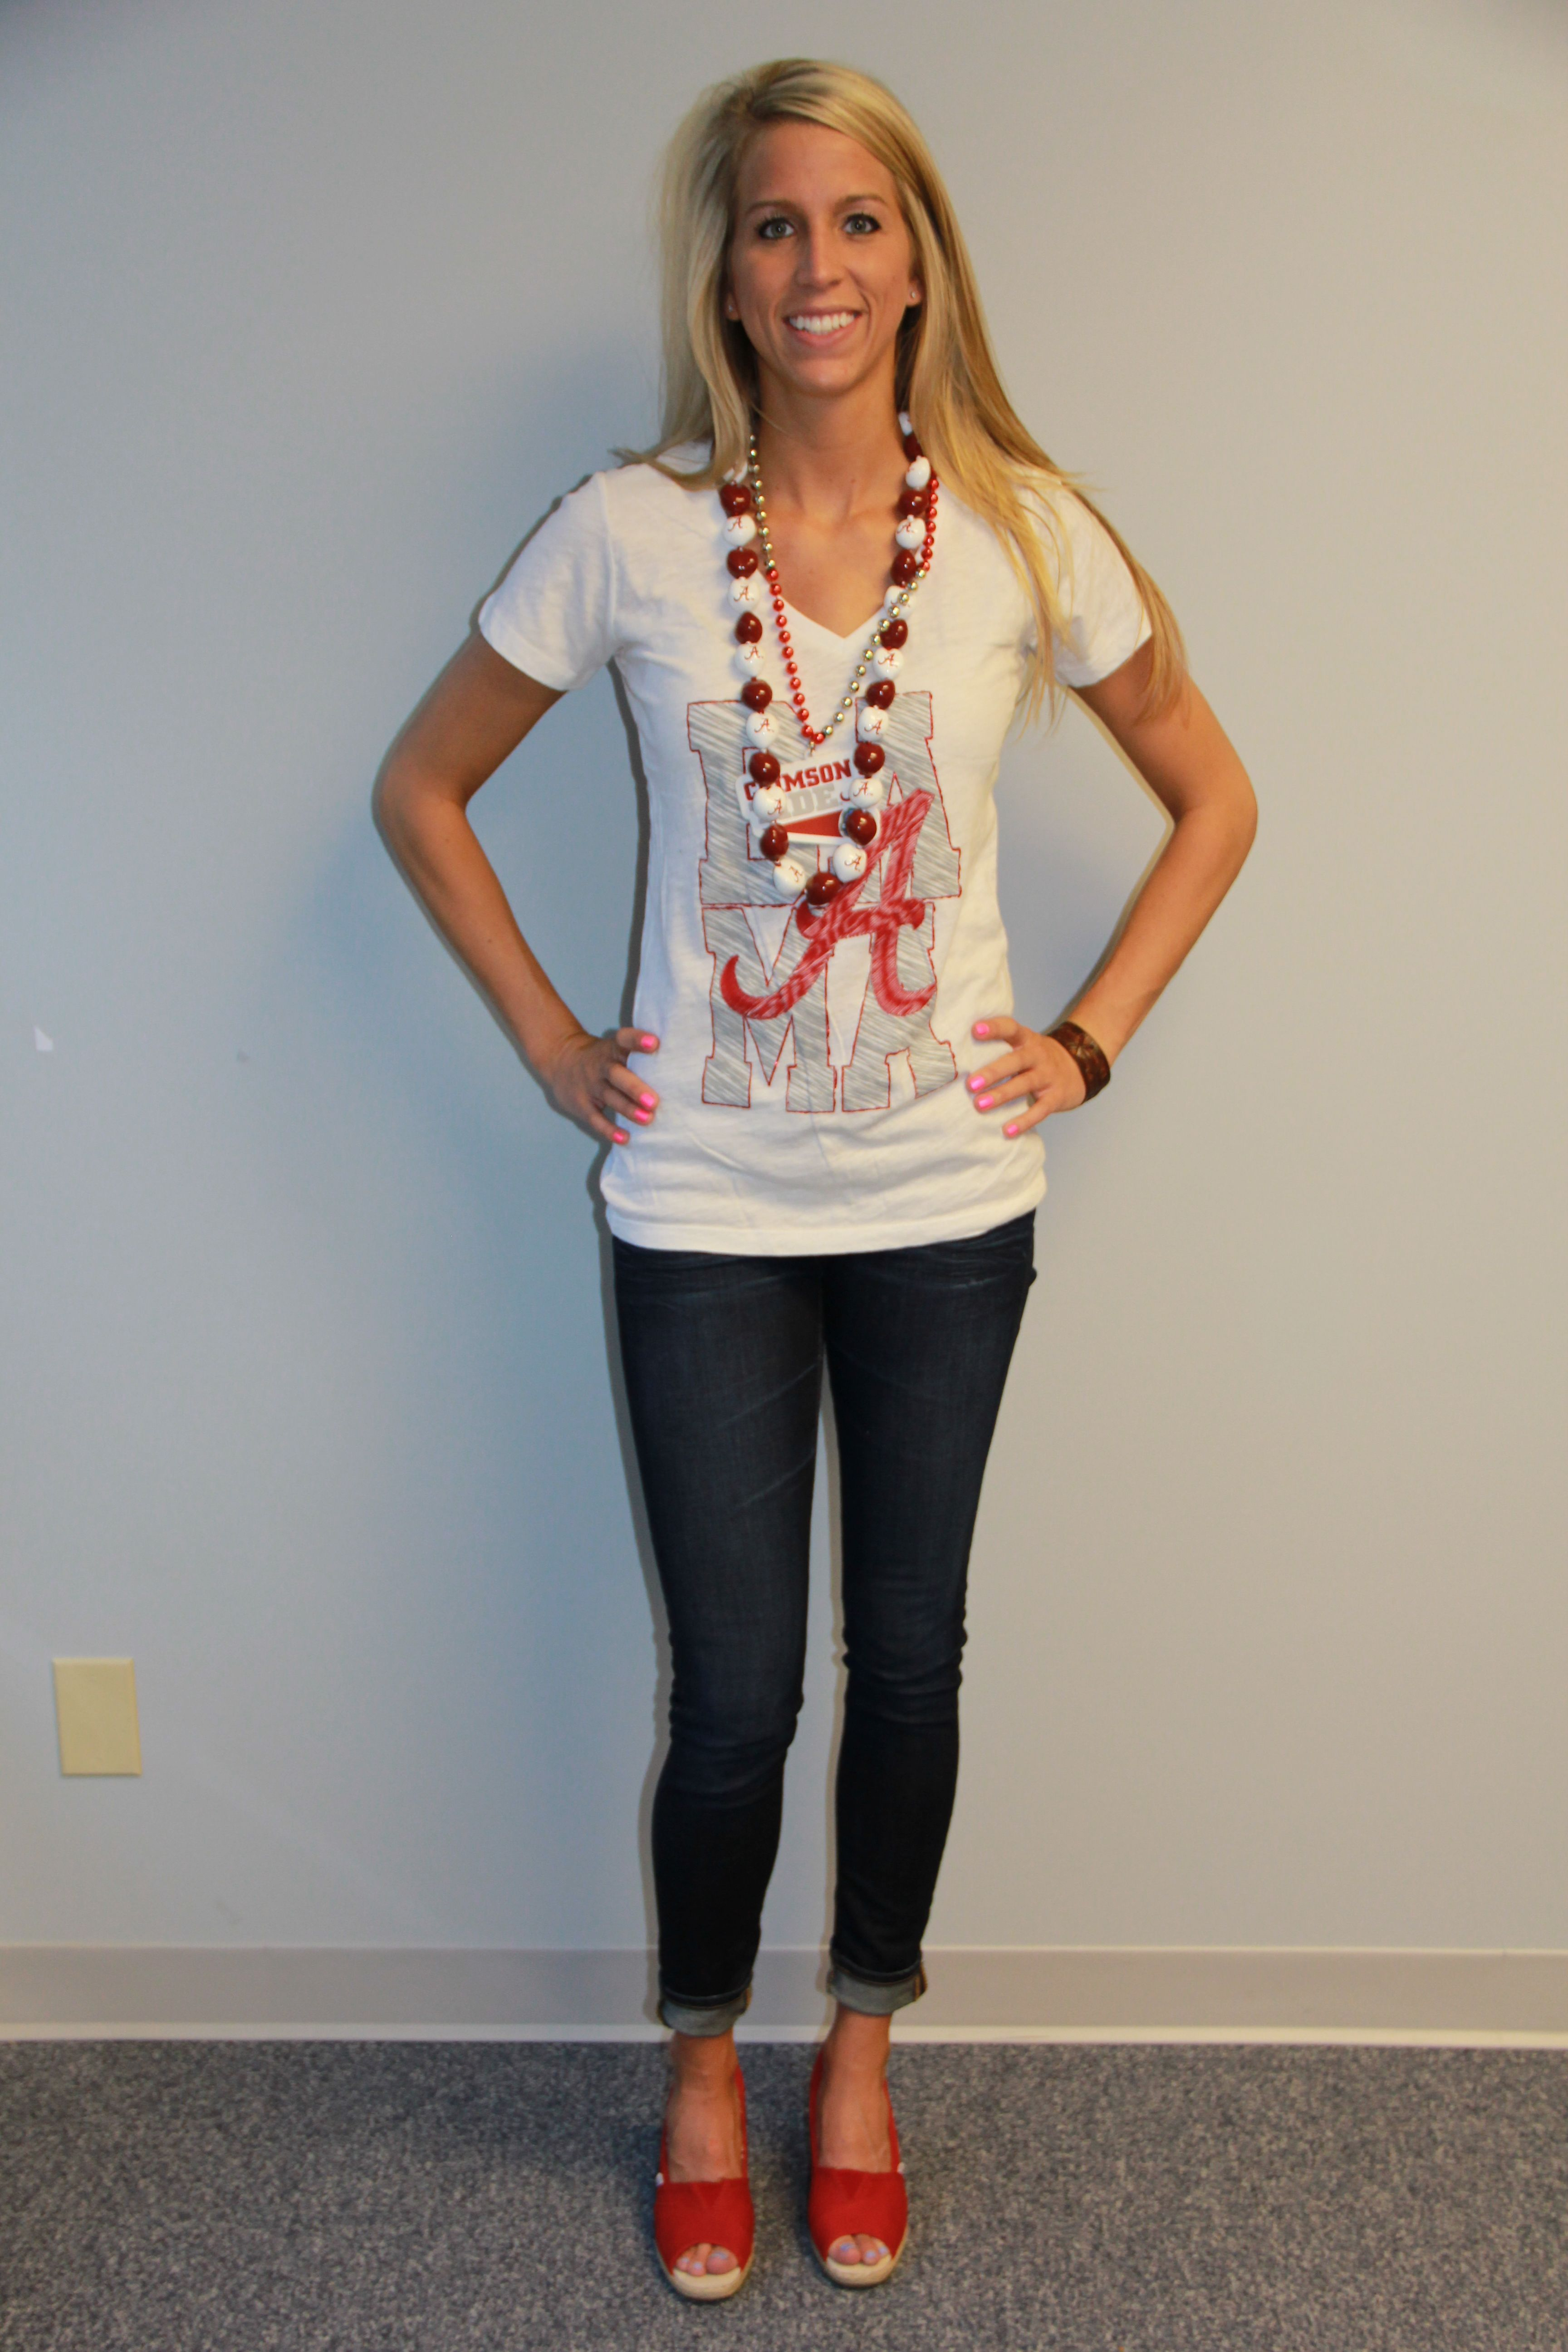 Some more tailgate outfits from Jordan Get your Alabama gear for